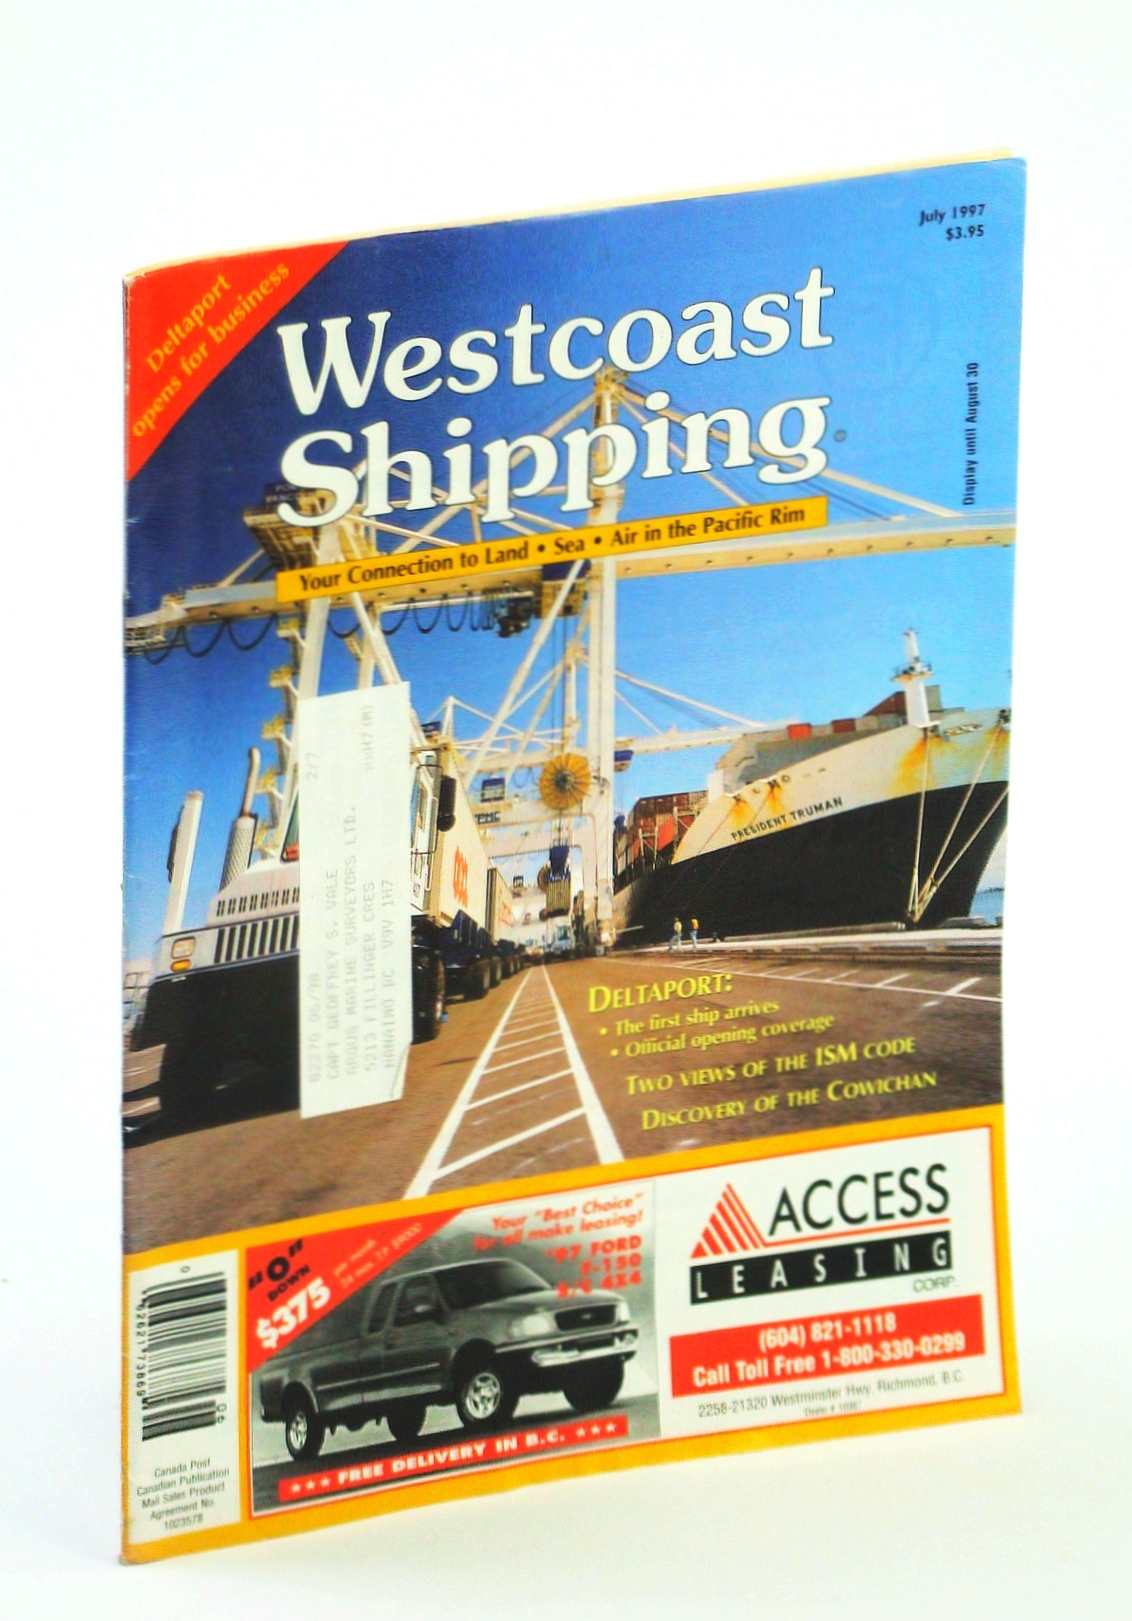 Image for Westcoast Shipping [Magazine] - Your Connection to Land, Sea, Air in the Pacific Rim, July 1997